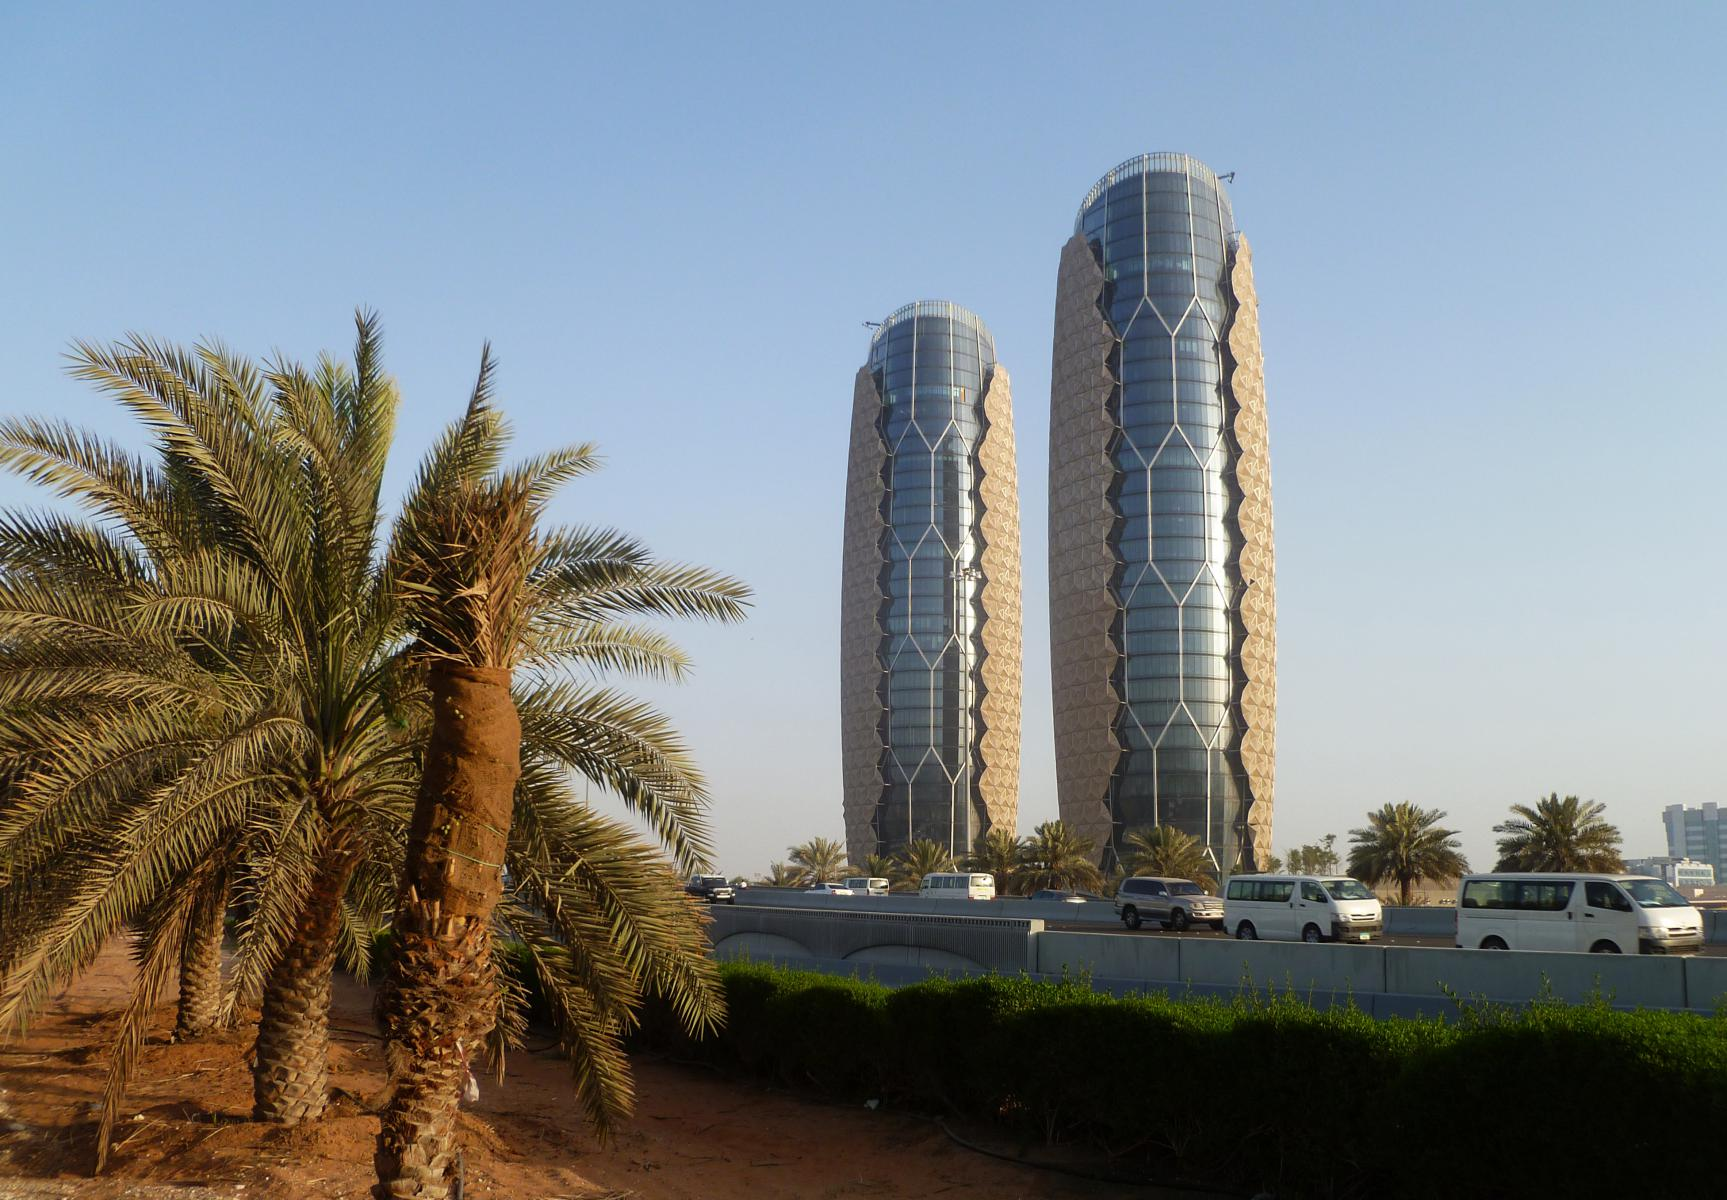 Discussing the Design: An Indepth Look at the Design of the Al Bahar Towers  in Abu Dhabi by Aedas   Livin Spaces